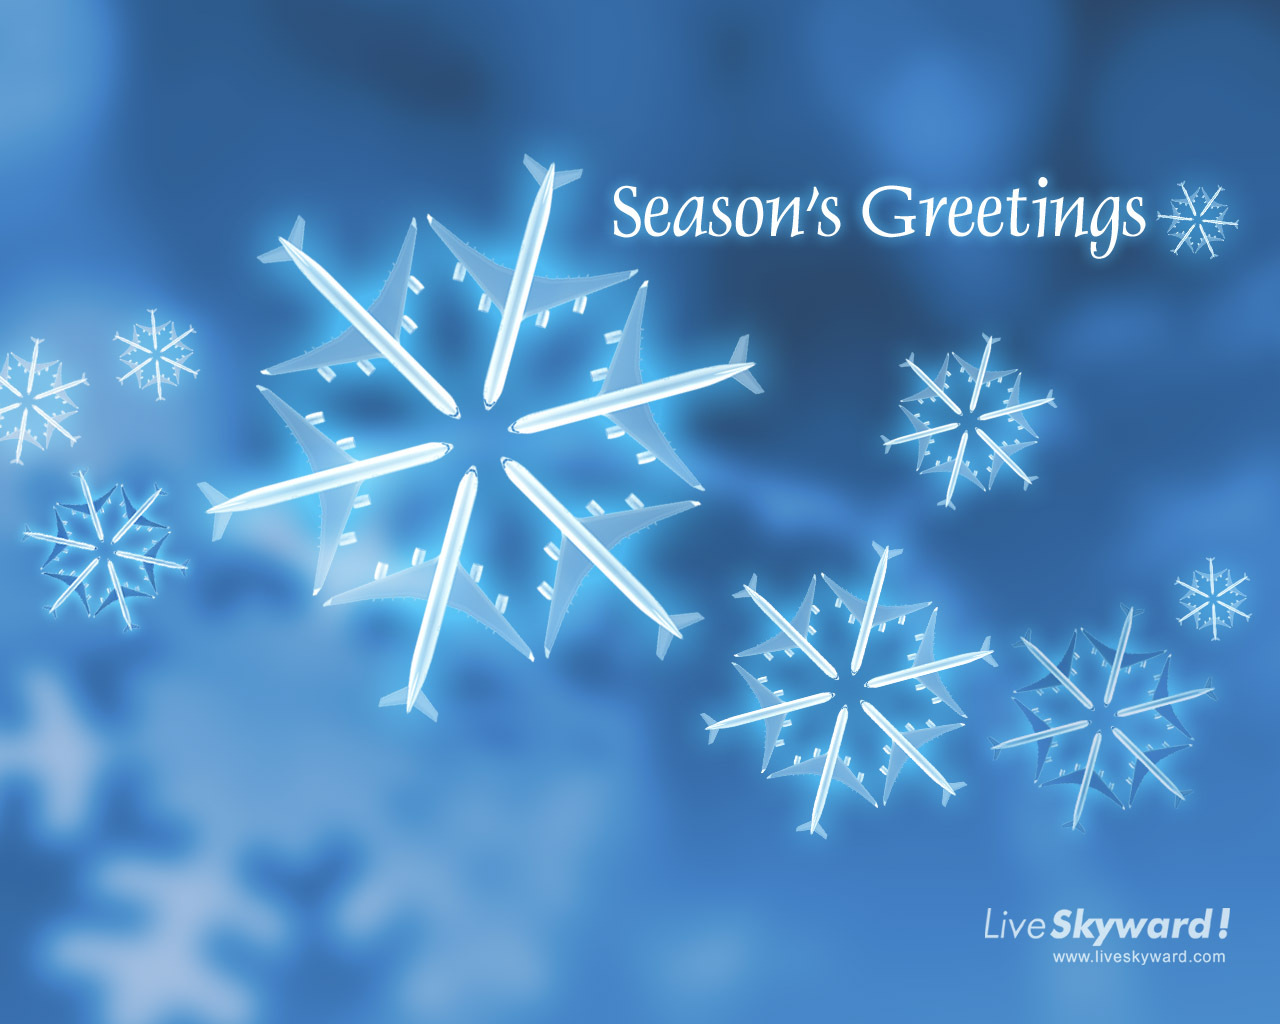 Cute Wallpapers To Say I Love You All Seasons Greetings Backgrounds Images Pics Comments